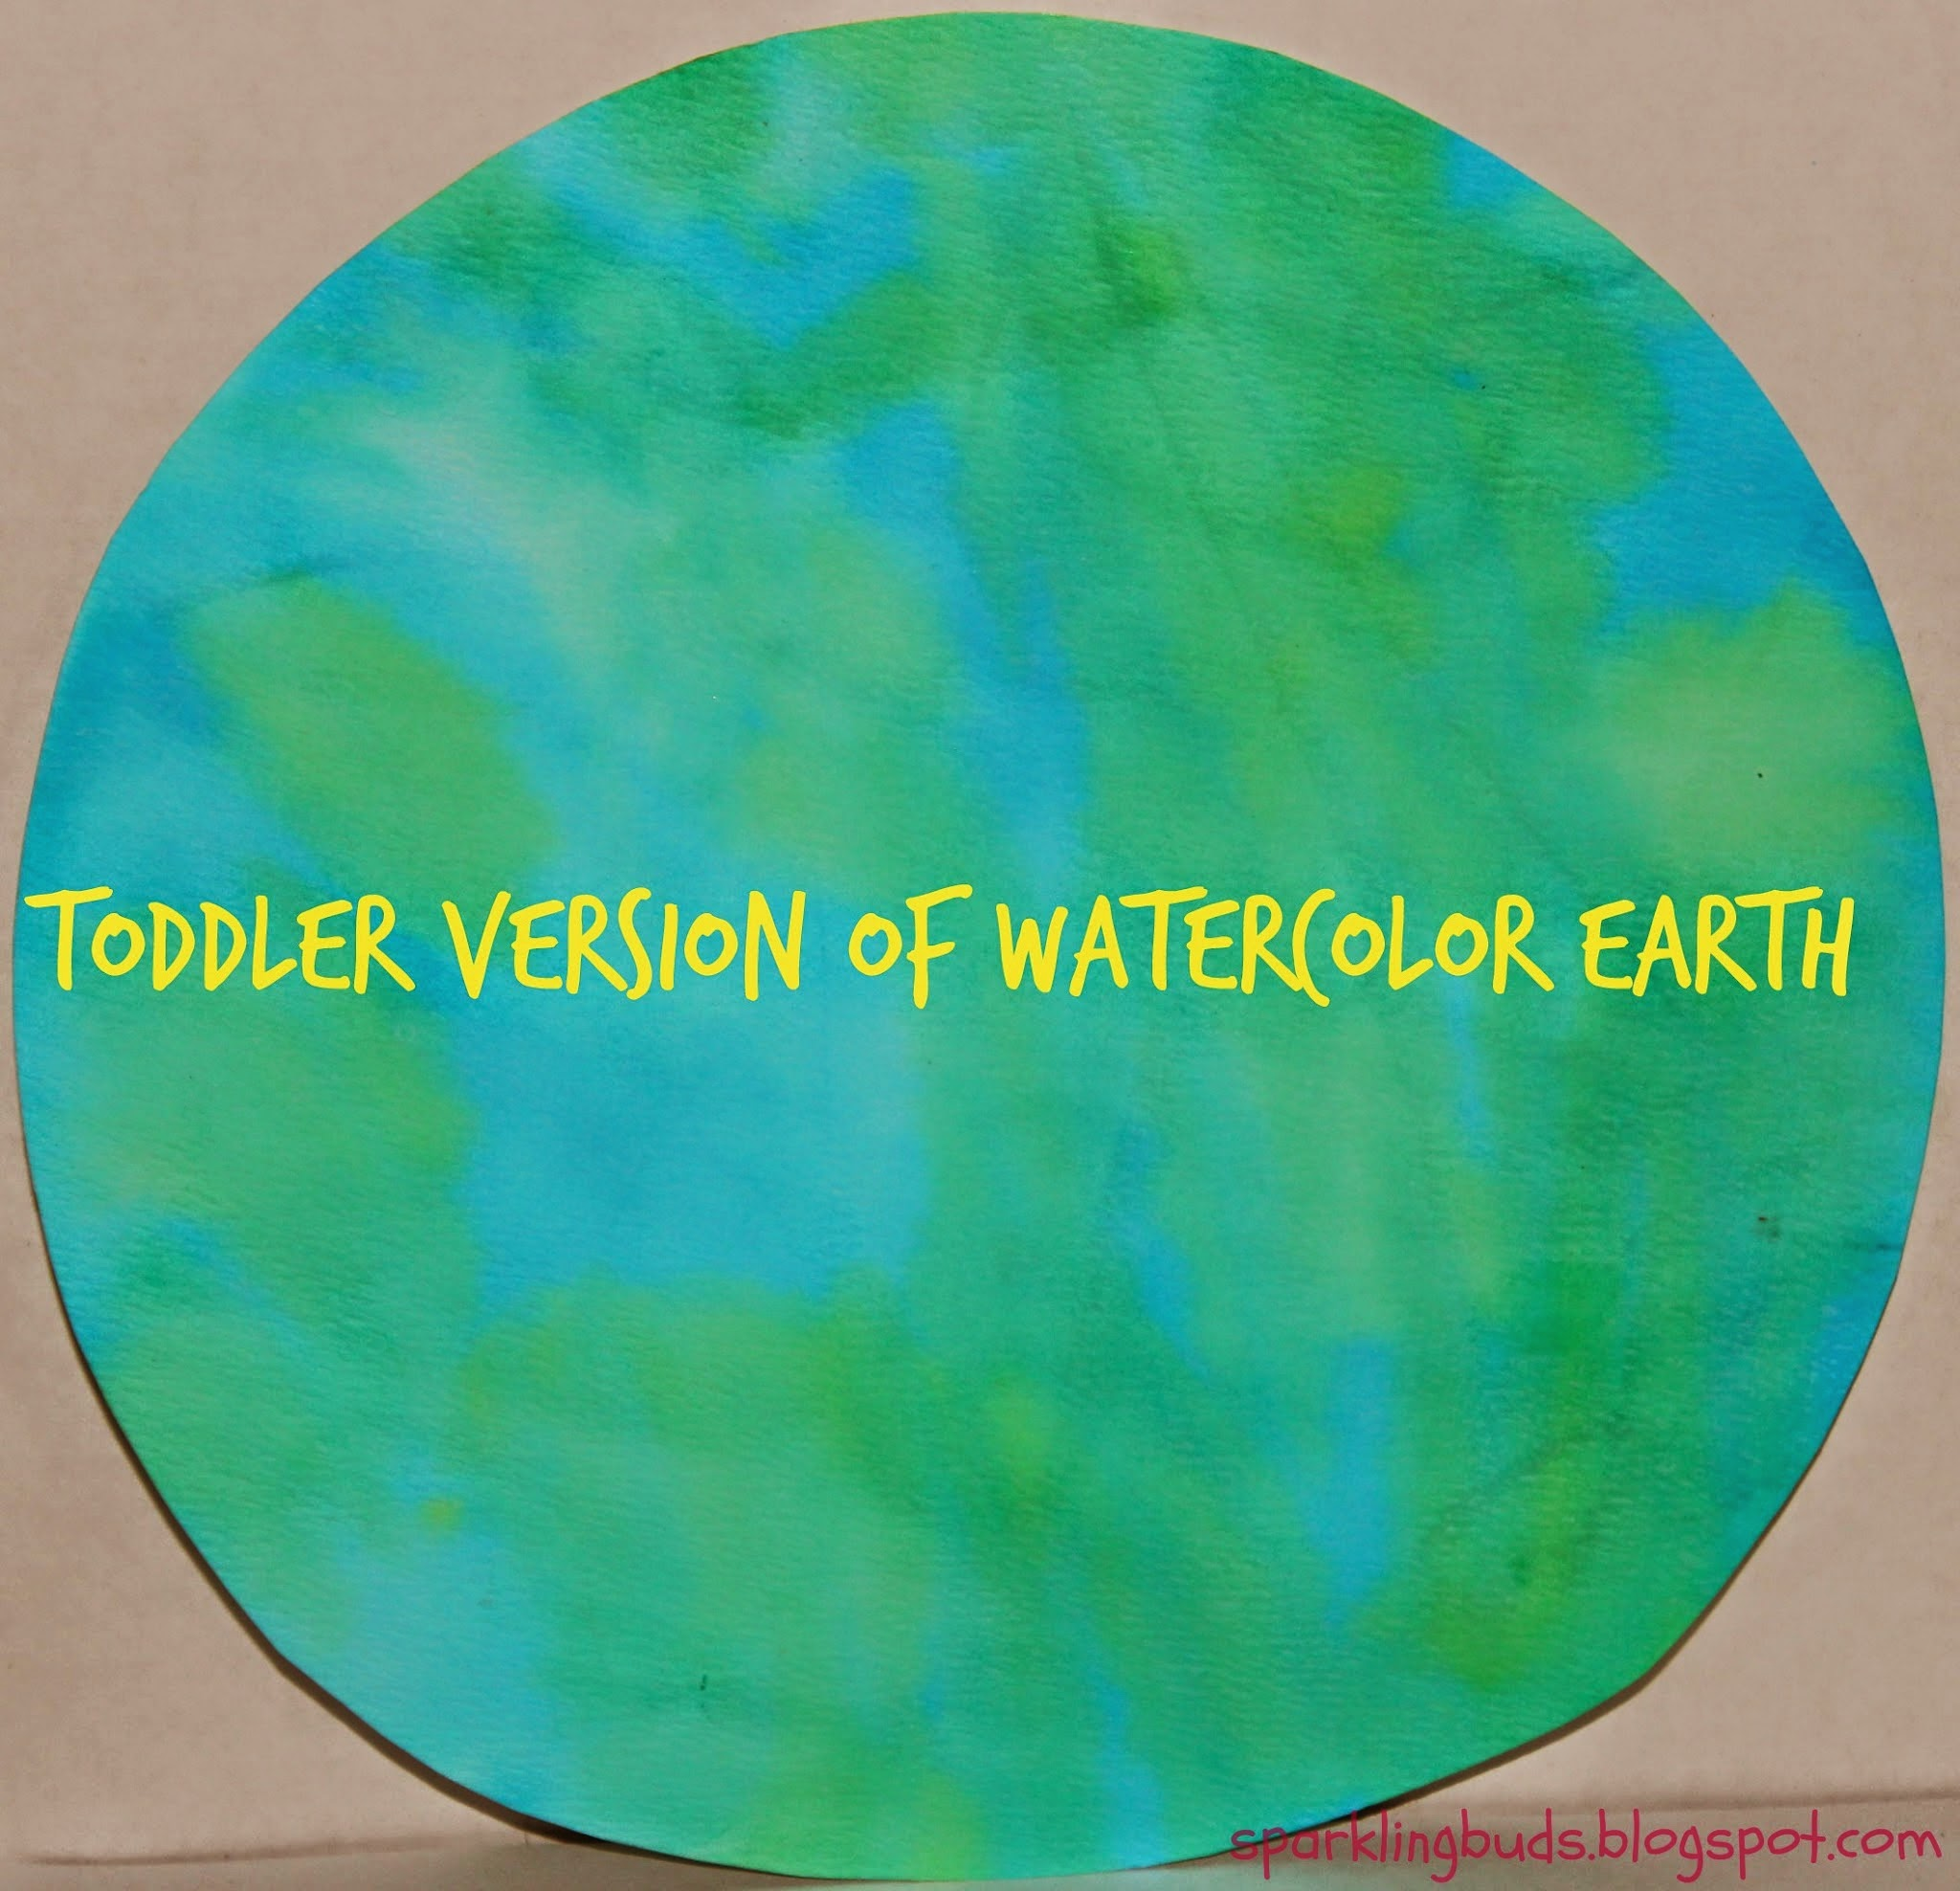 Toddler Version Of Watercolor Earth